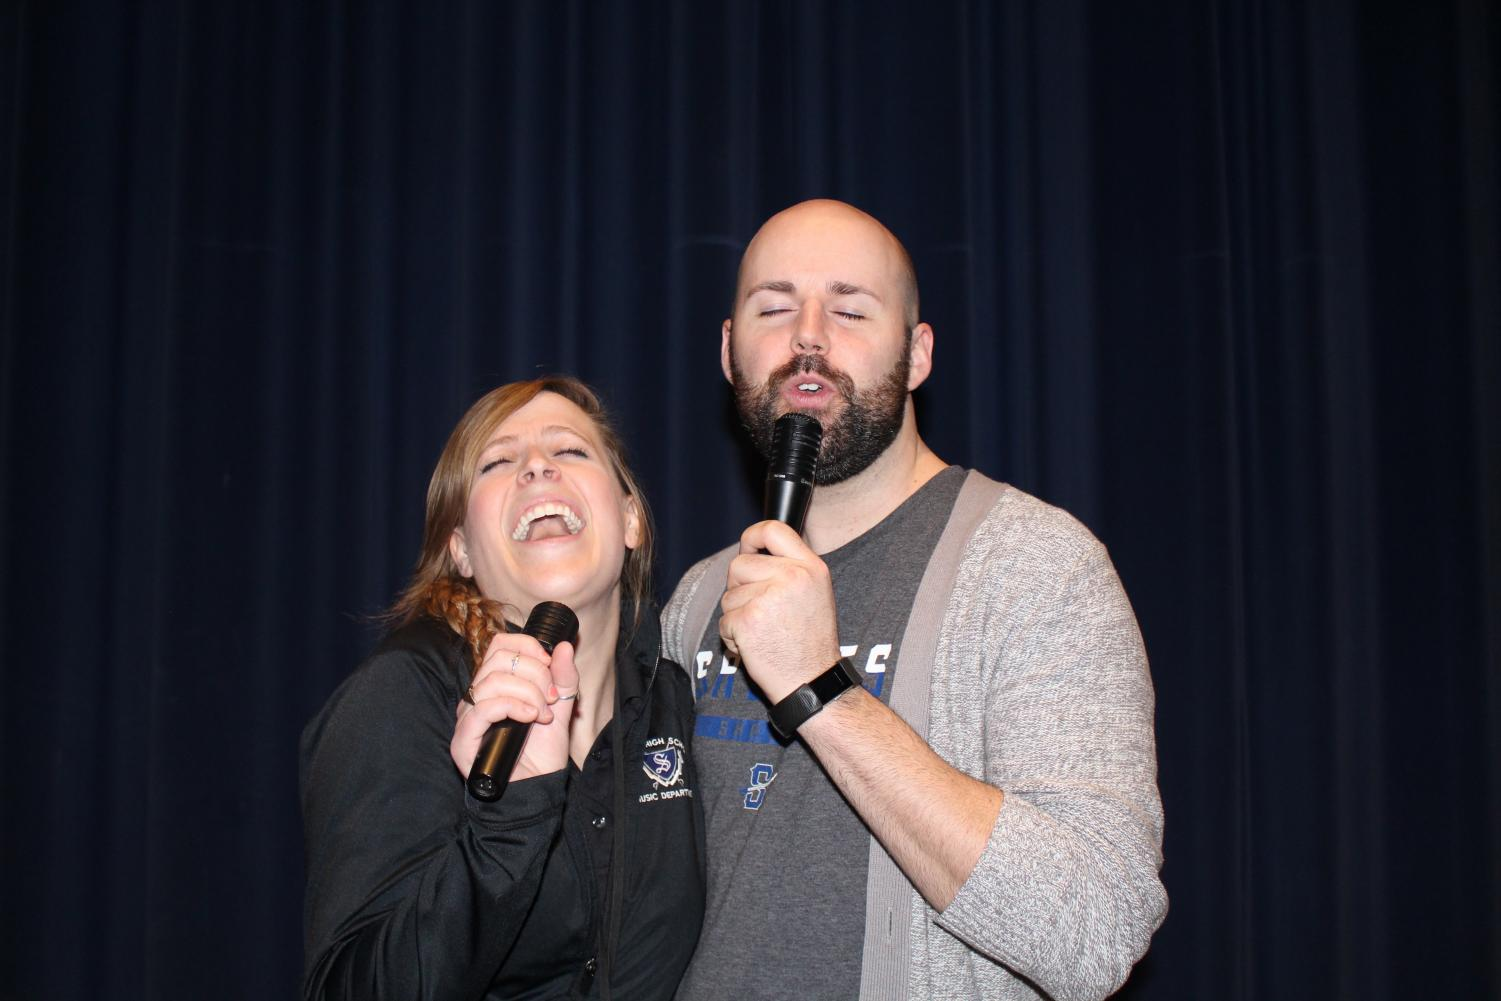 This weeks Humans of Sartell teachers, Mrs. Richards and Mr.Nordhues